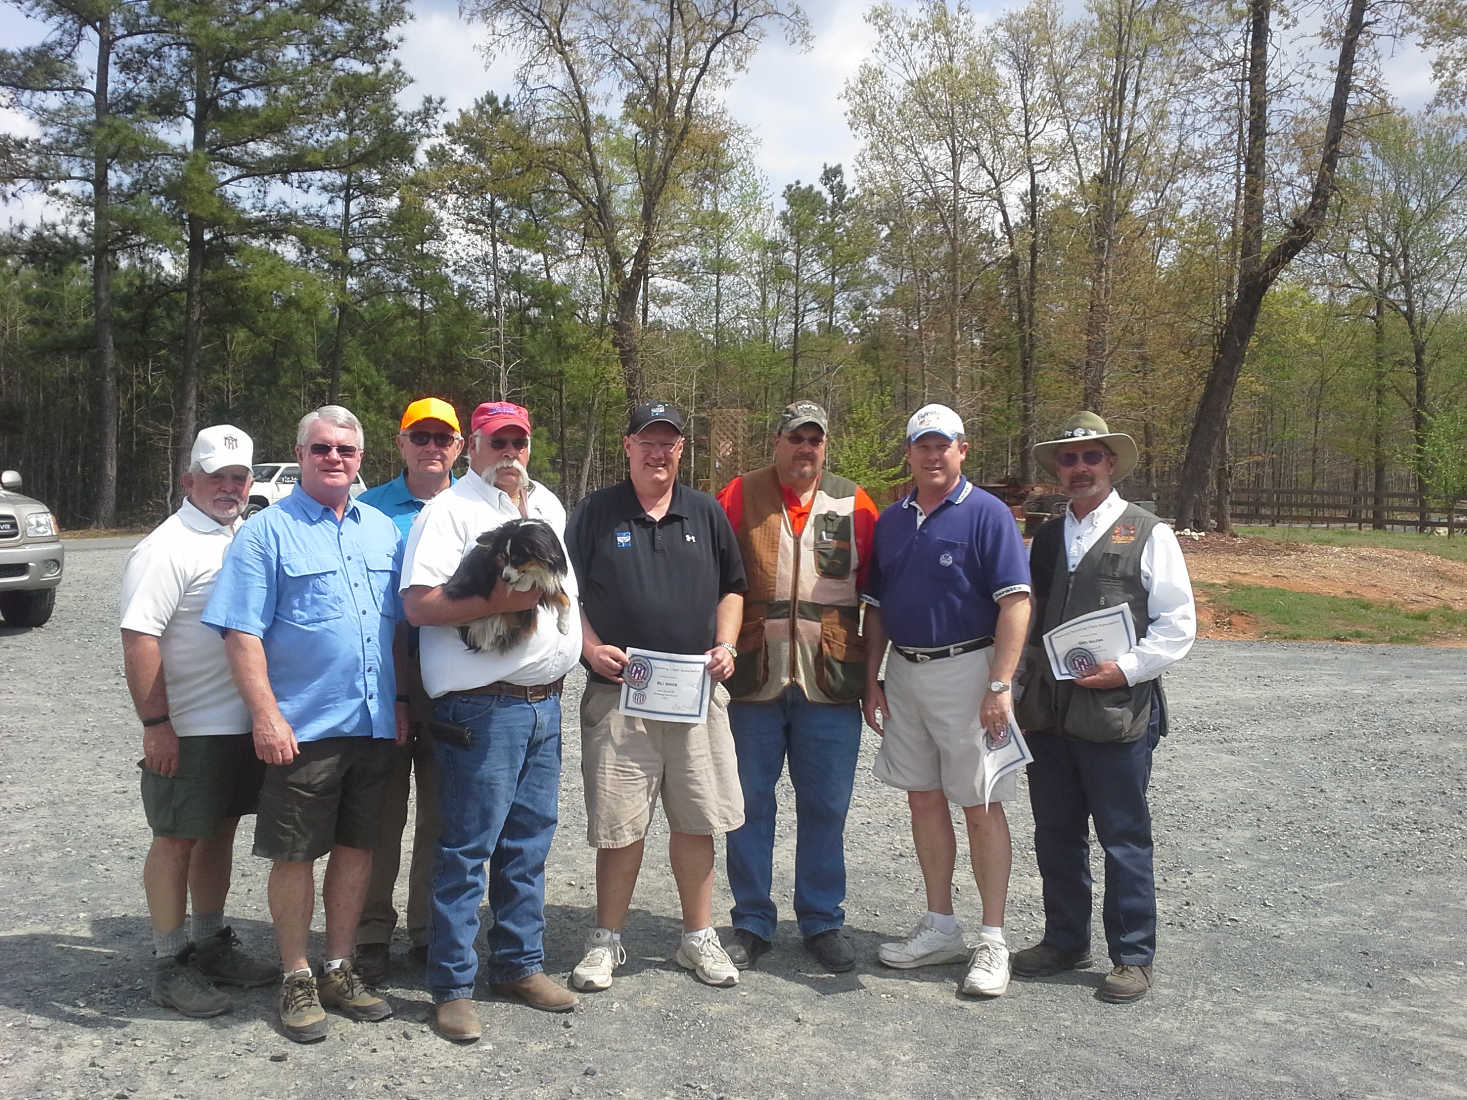 Itchy Trigger Finger! Here's What You Need to Get Started in Sporting Clays